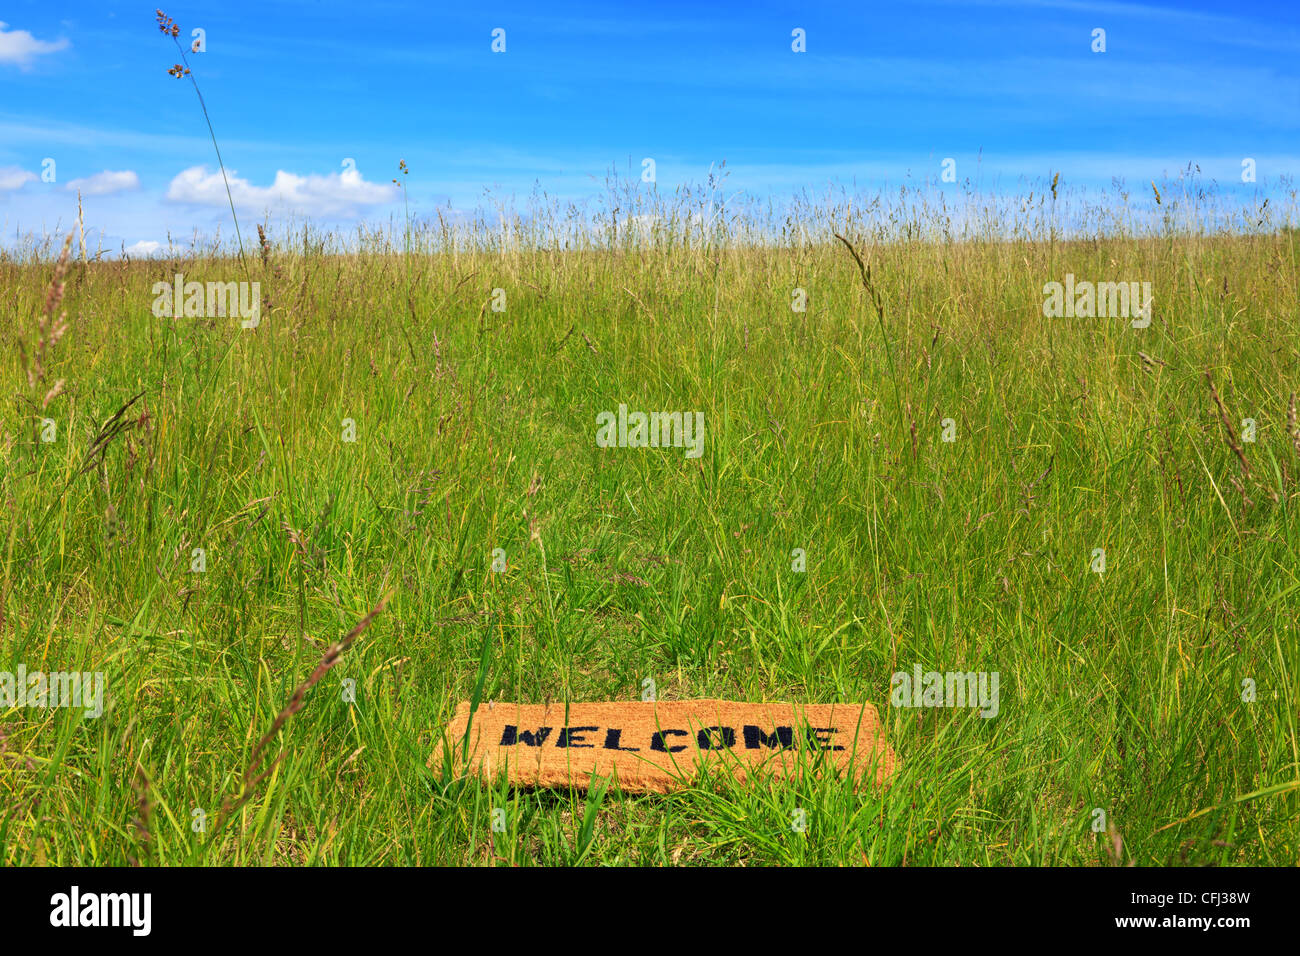 Photo of a welcome doormat in a grass meadow on a bright sunny day with blue sky and sunshine. - Stock Image